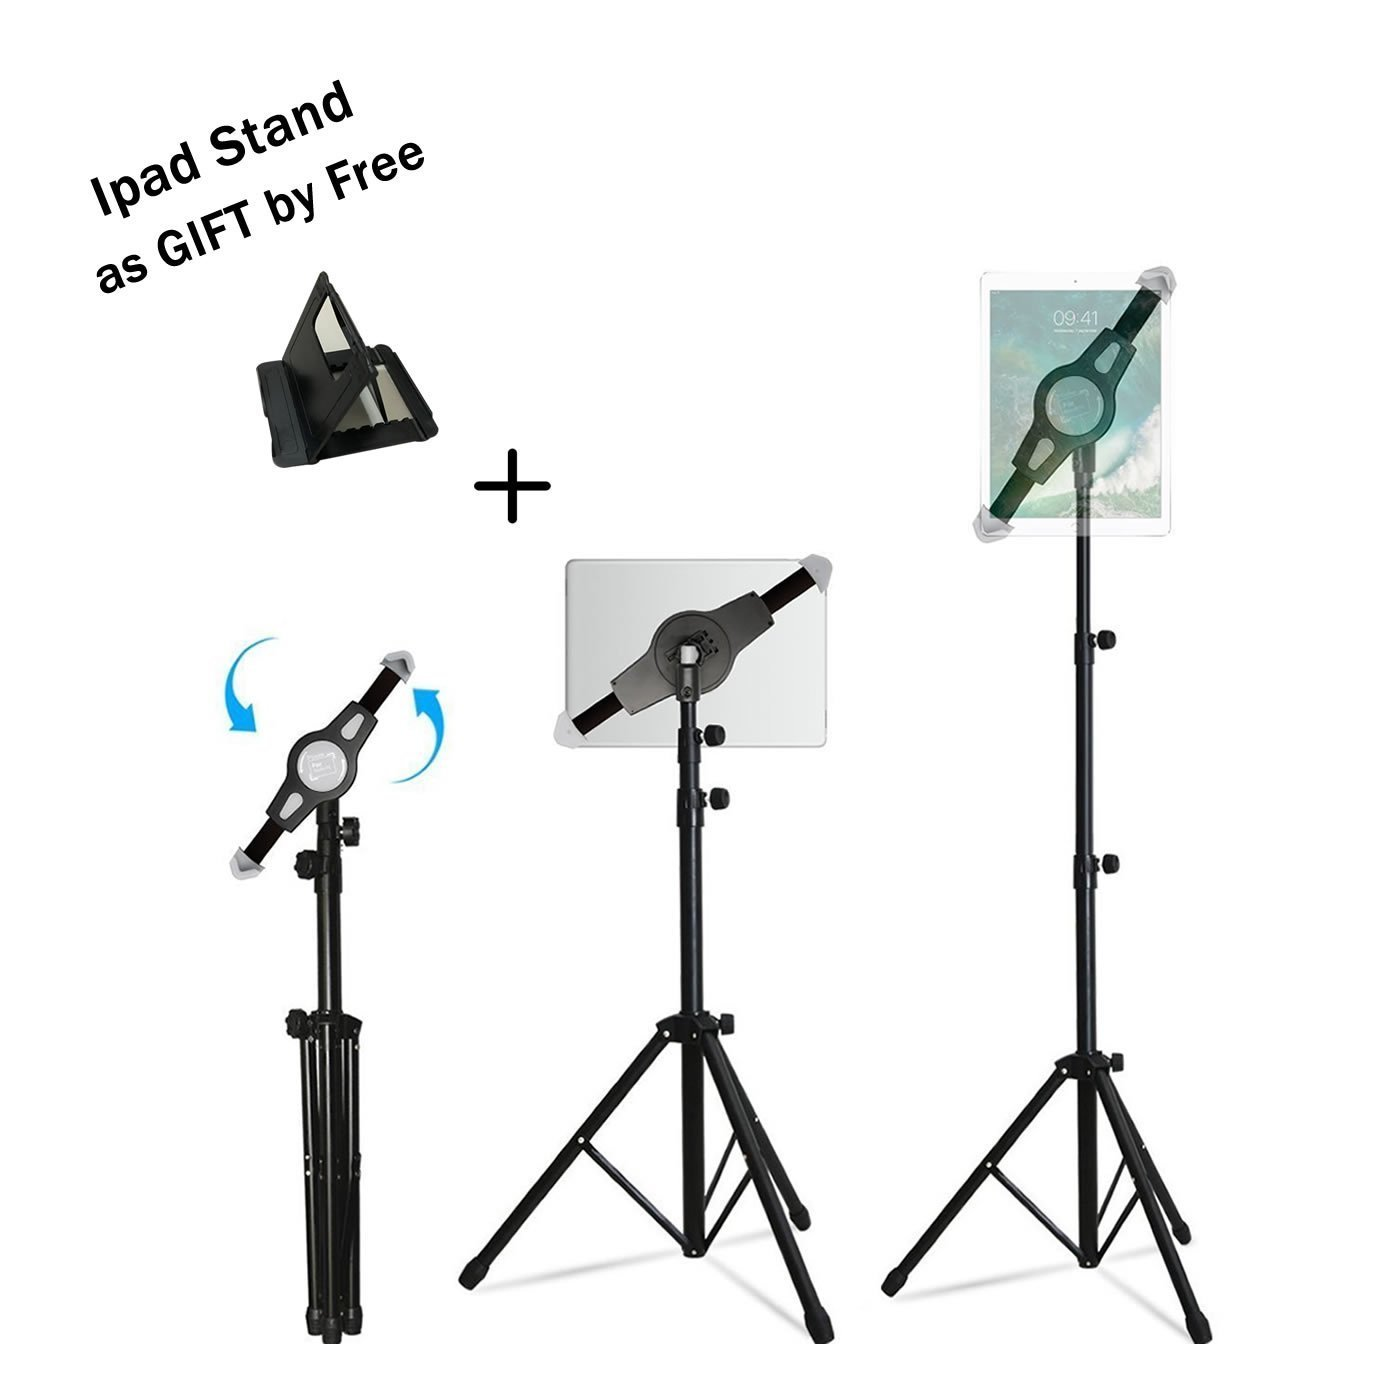 Ipad Tripod Mount Floor Stand, Weiyudang Height Adjustable 20 to 60 Inch Tablet Tripod Stand Mount Ipad,Ipad Mini Others Within 7-12 Inch, Carrying Case Includeed (Upgrade Tripod)